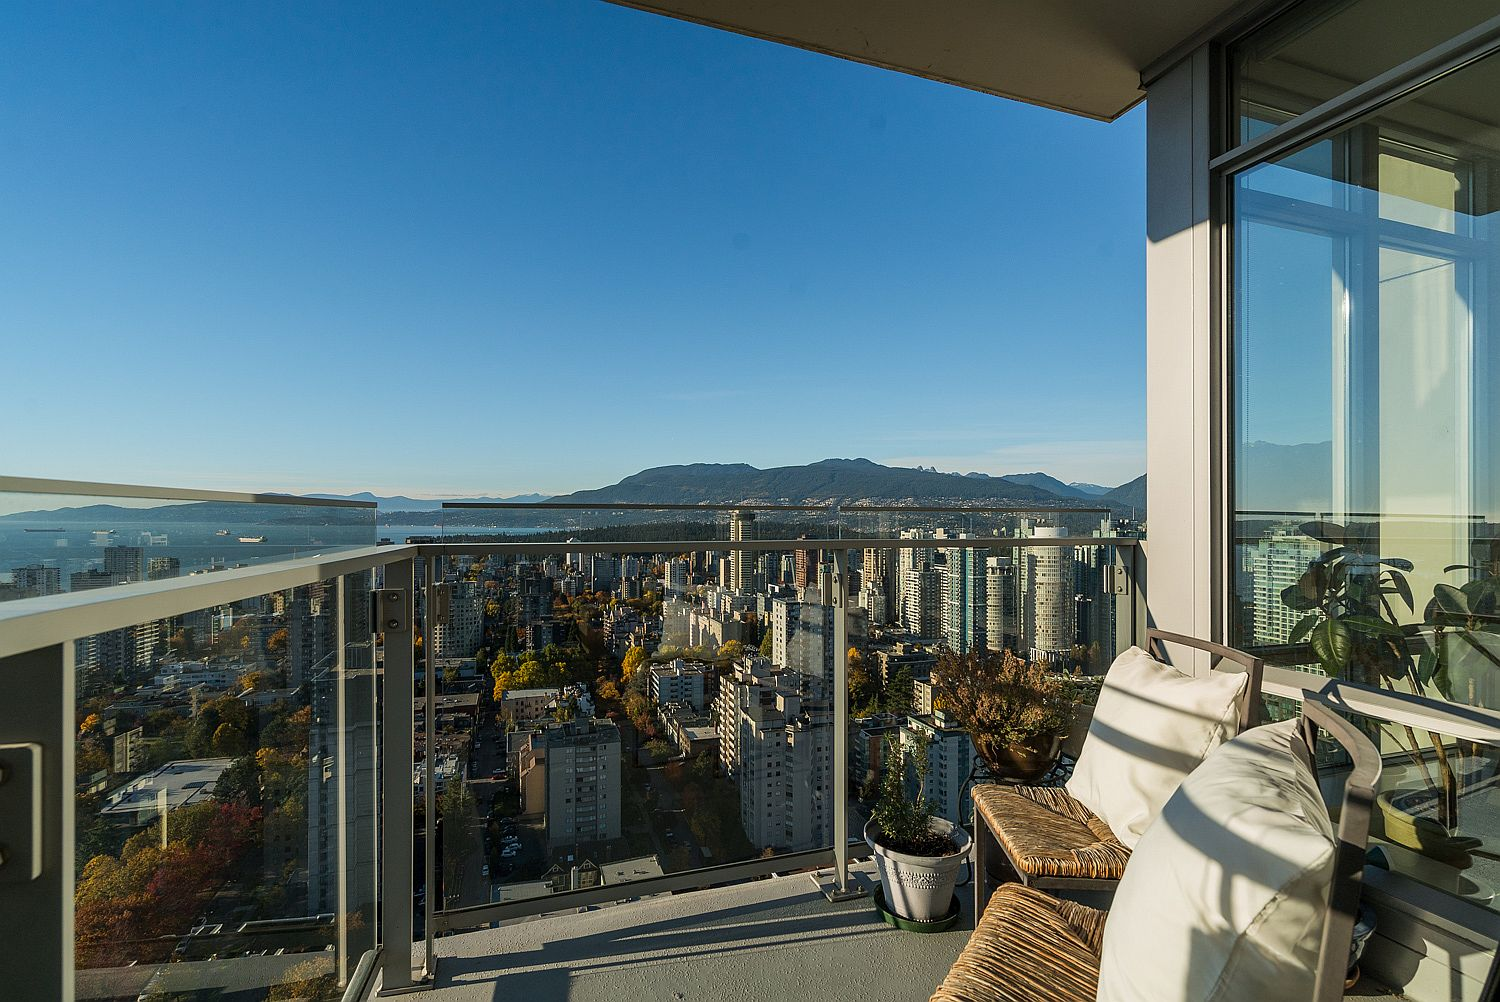 Small balcony of the 36th floor luxury condo with mesmerizing view of the Bay Area